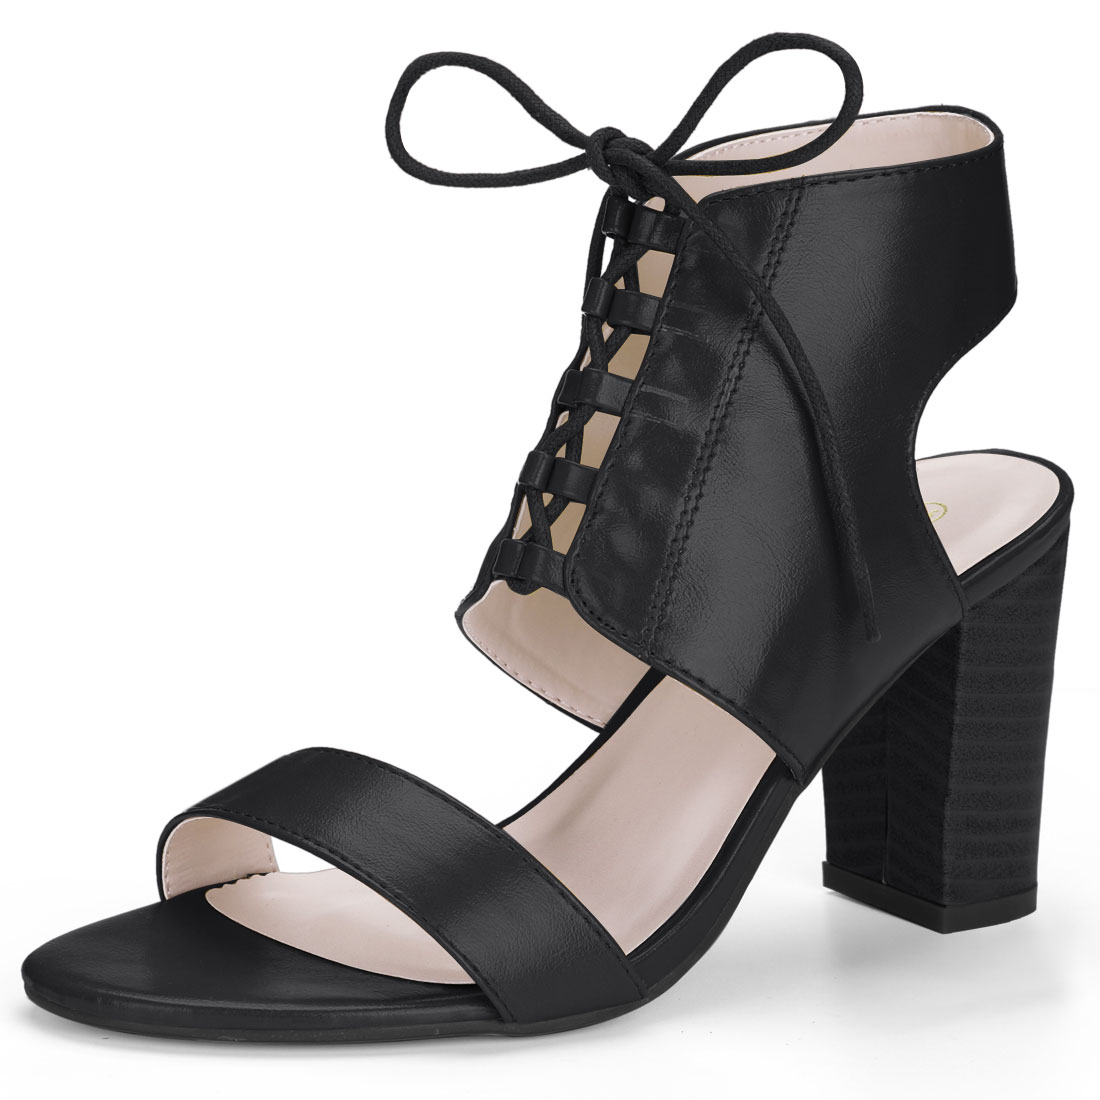 Women Stacked High Heel Open Toe Lace Up Sandals Black US 9